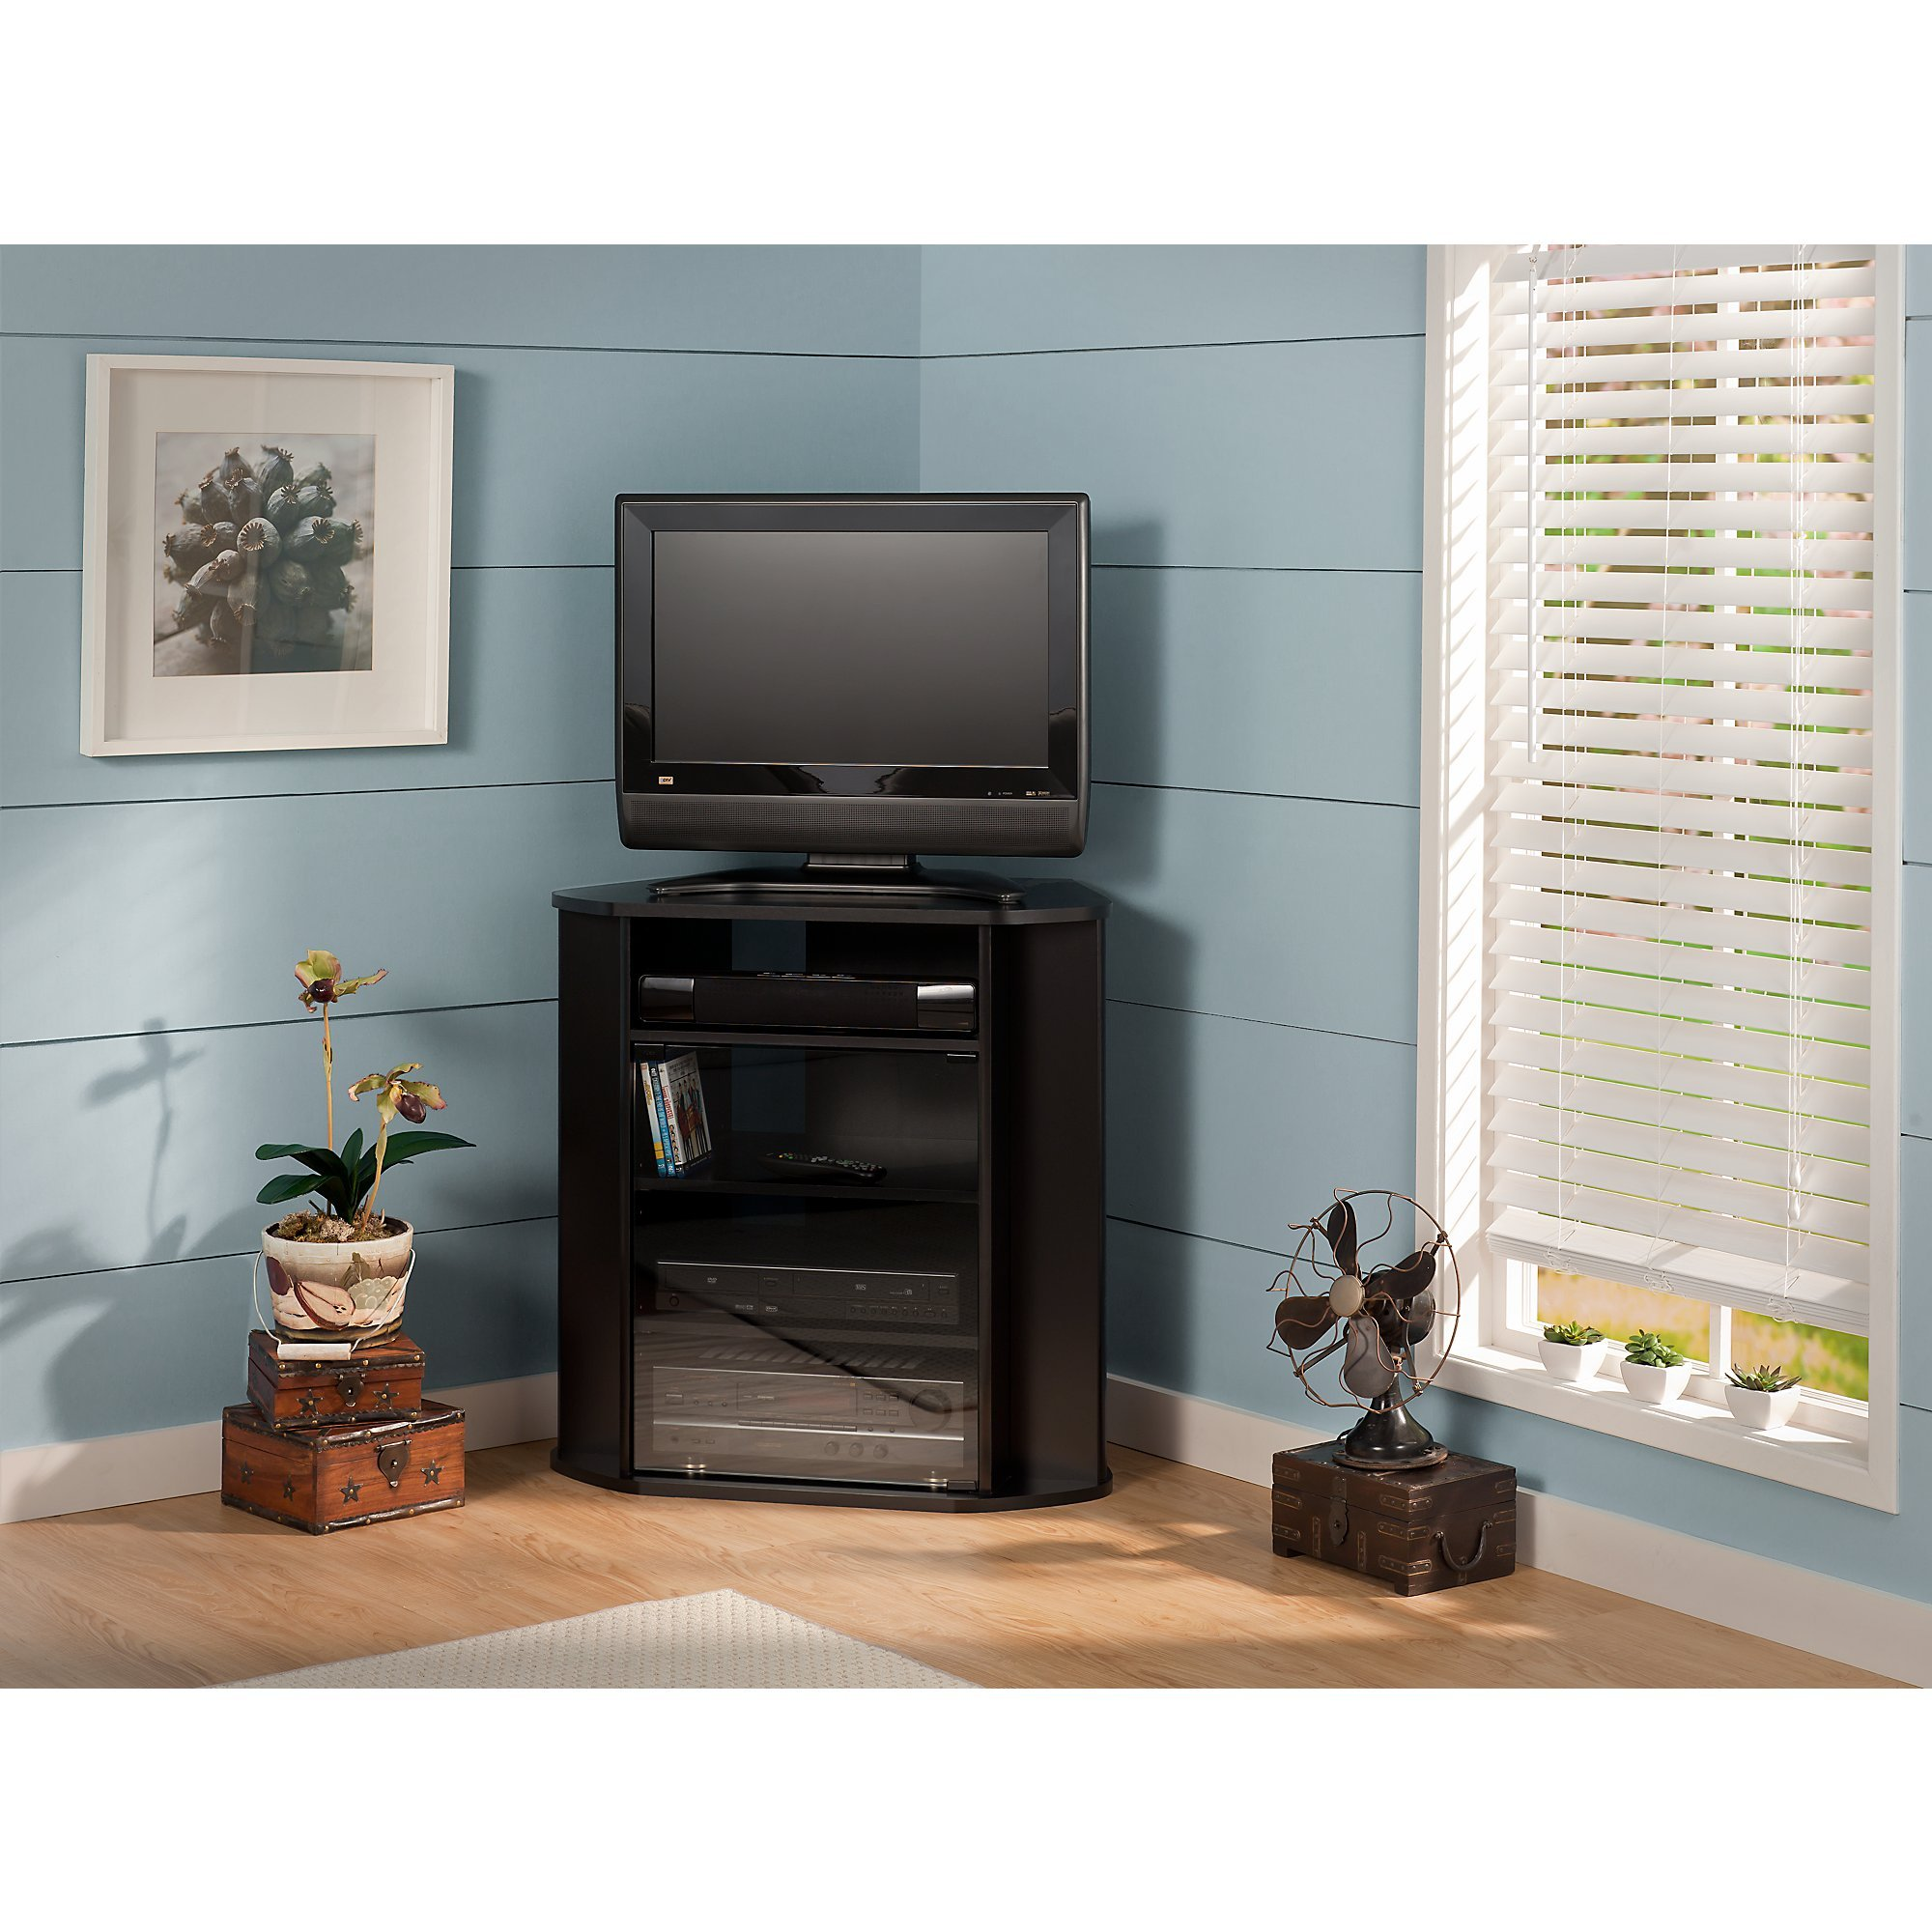 Visions Tall Corner TV Stand in Black